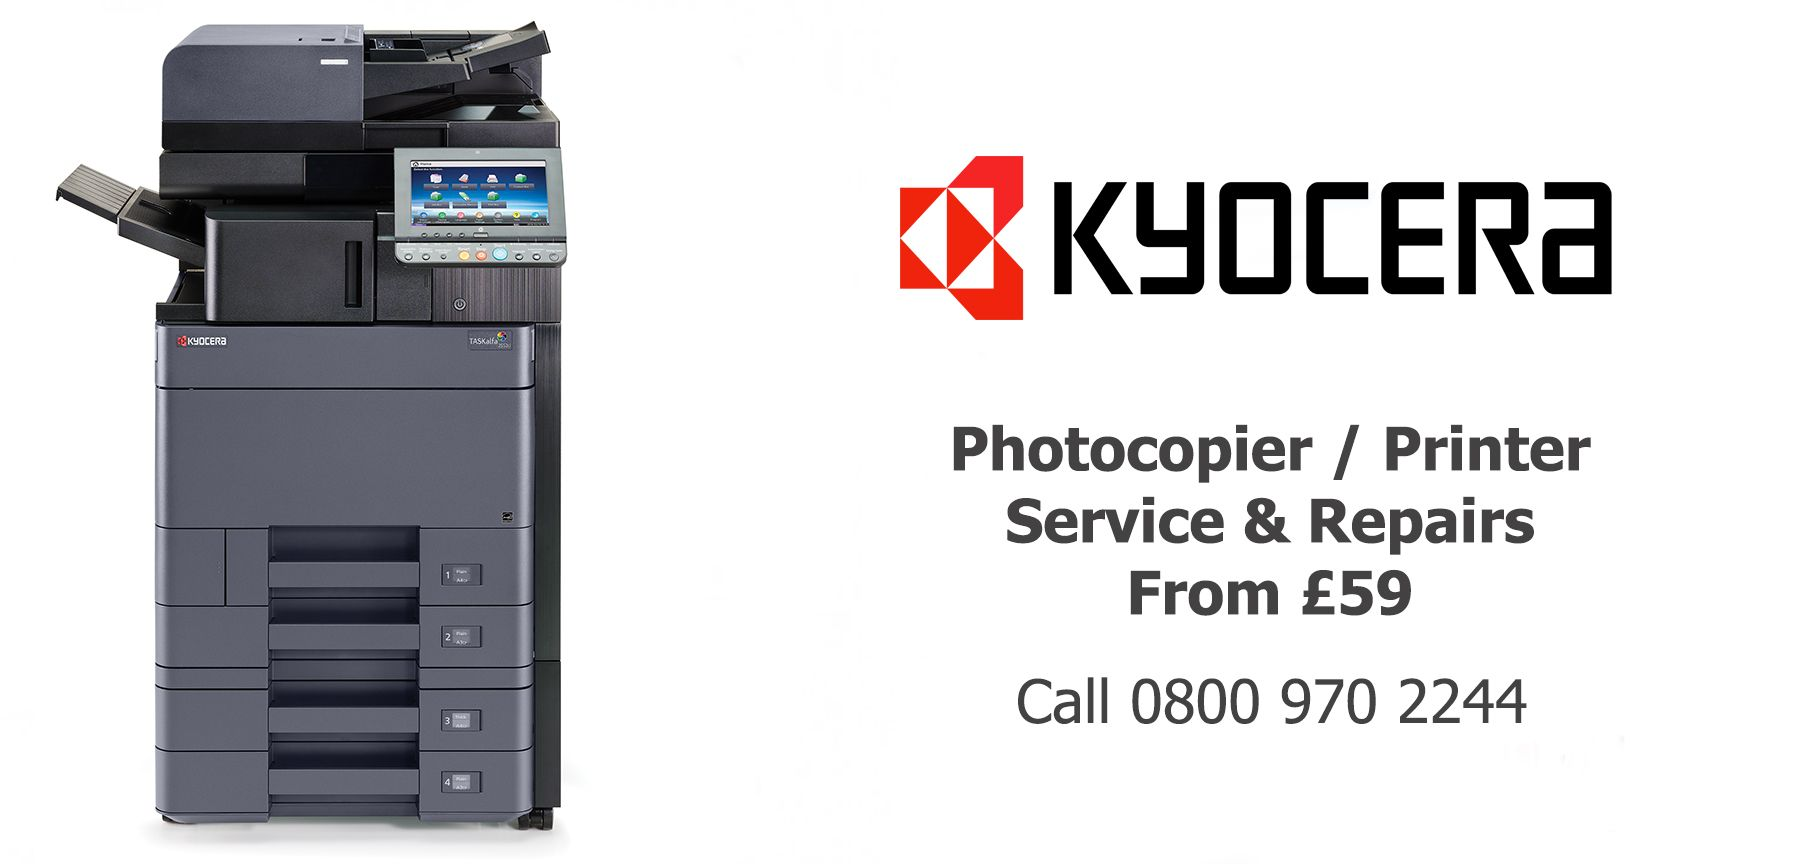 Kyocera TASKalfa photocopier service and repairs in Halifax Burnley Accrington Colne